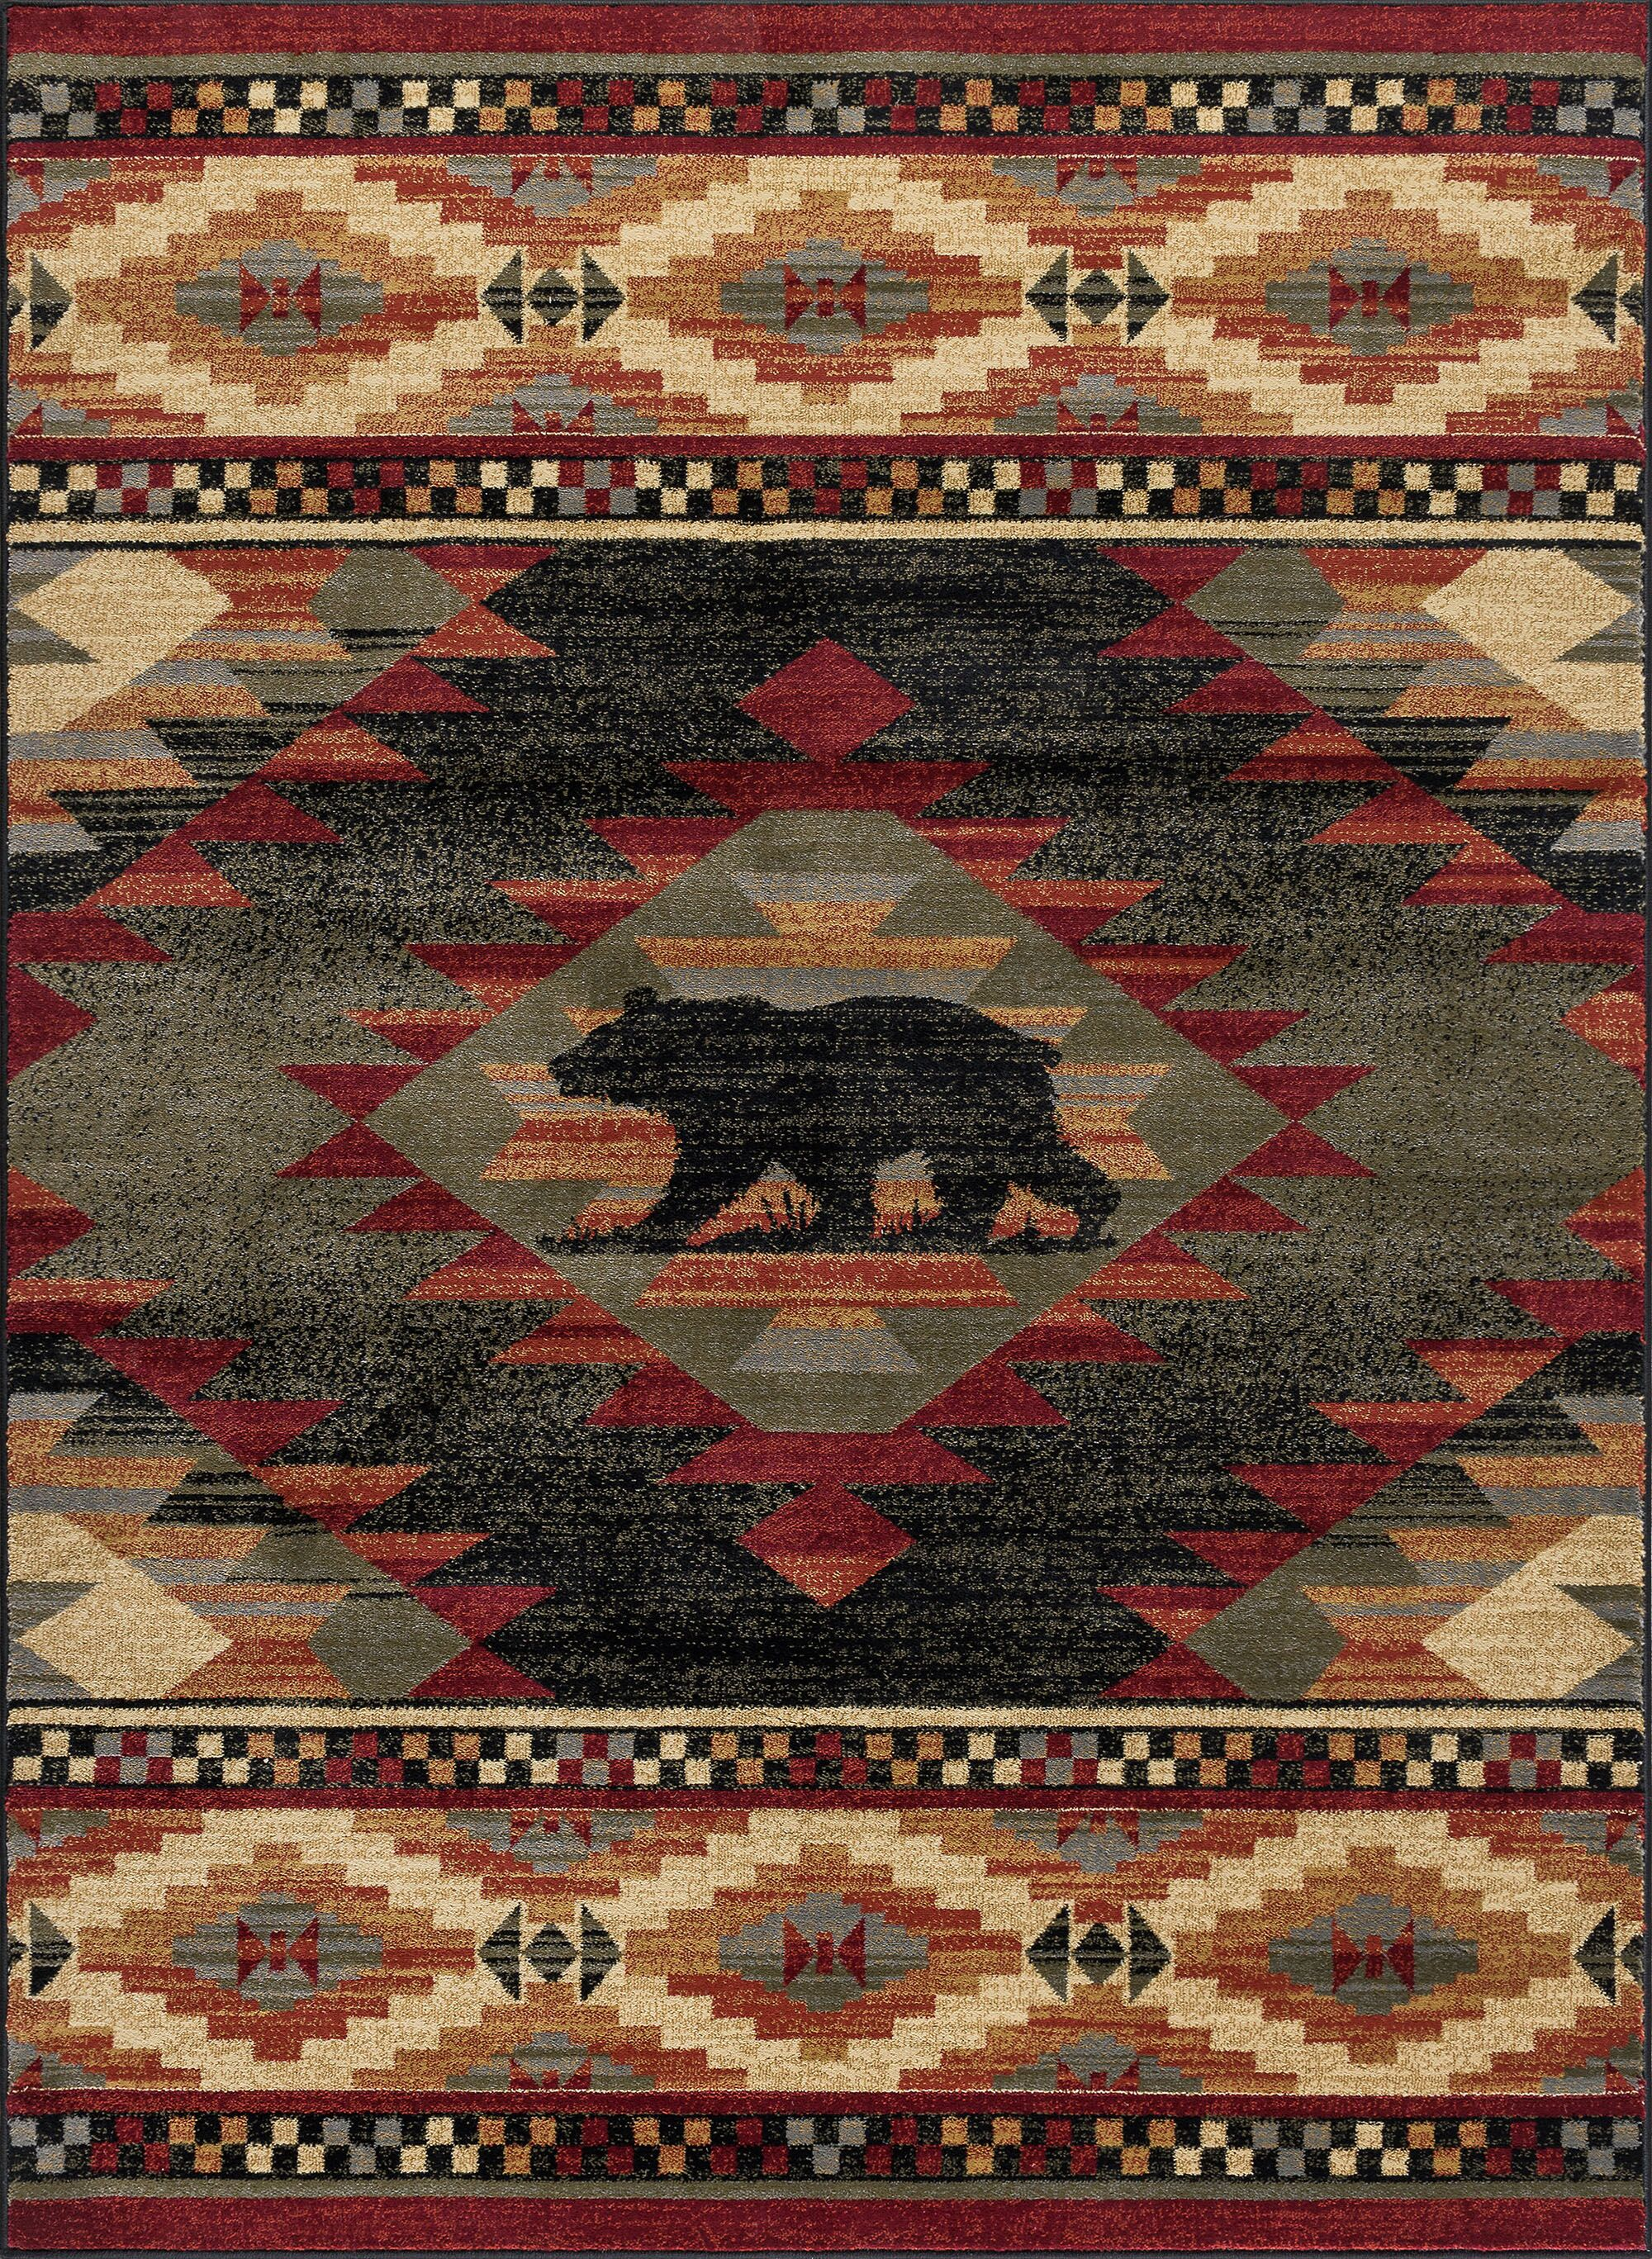 Villatoro Expedition Wildlife Novelty Lodge Beige Area Rug Rug Size: 3'11'' x 5'3''